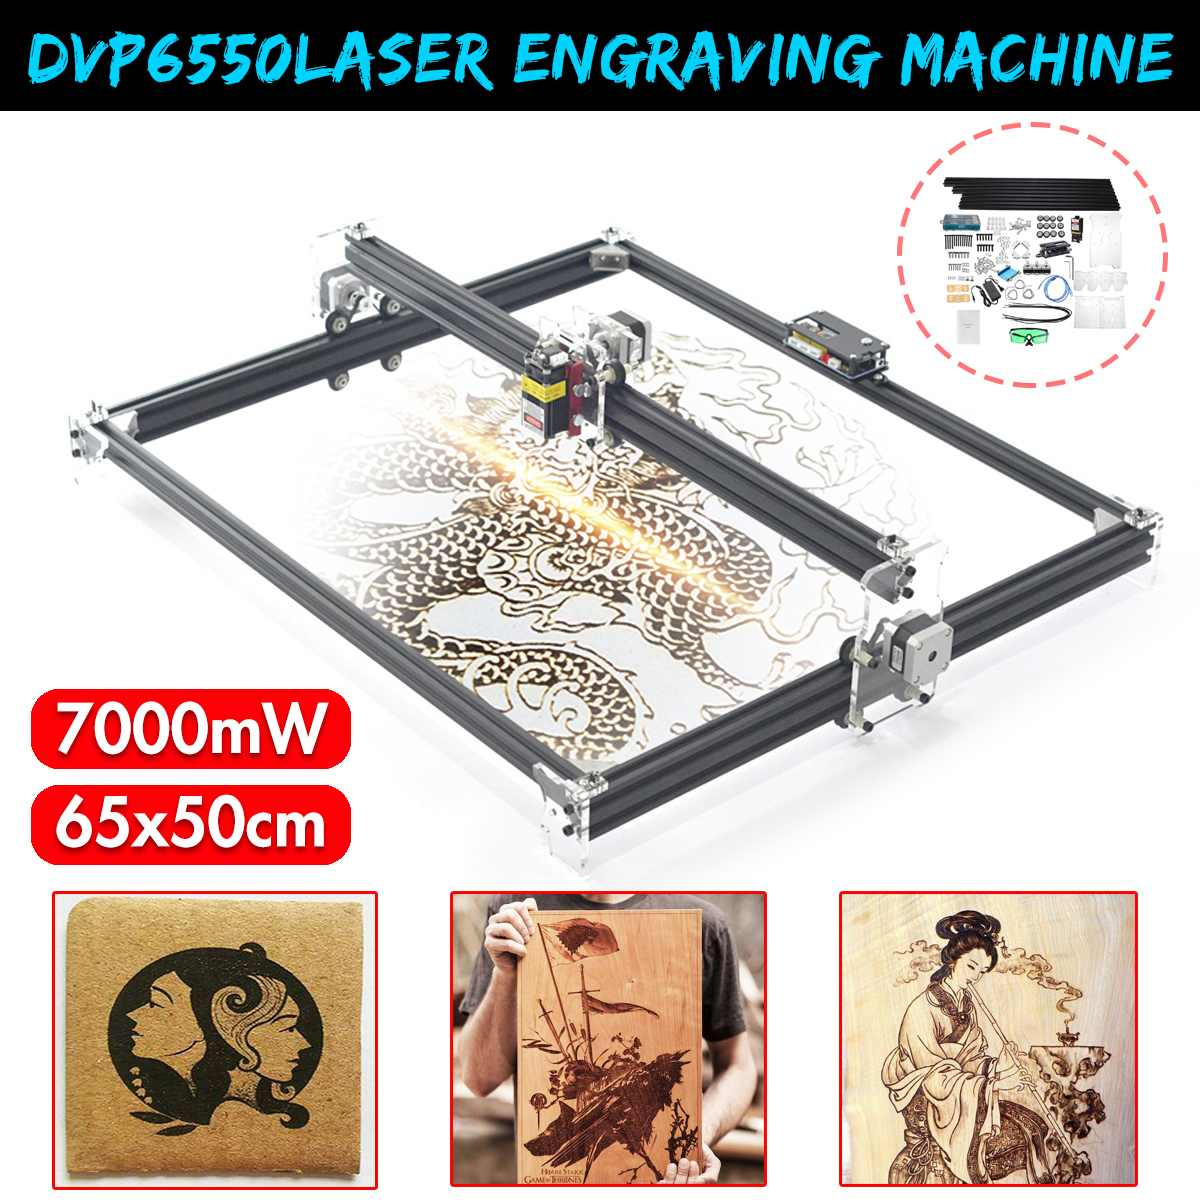 DVP6550 7000MW/6000MW/3000MW Blue CNC Laser Engraving Machine 2Axis DC 12V DIY Engraver Desktop Wood Router/Cutter/Printer+Laser